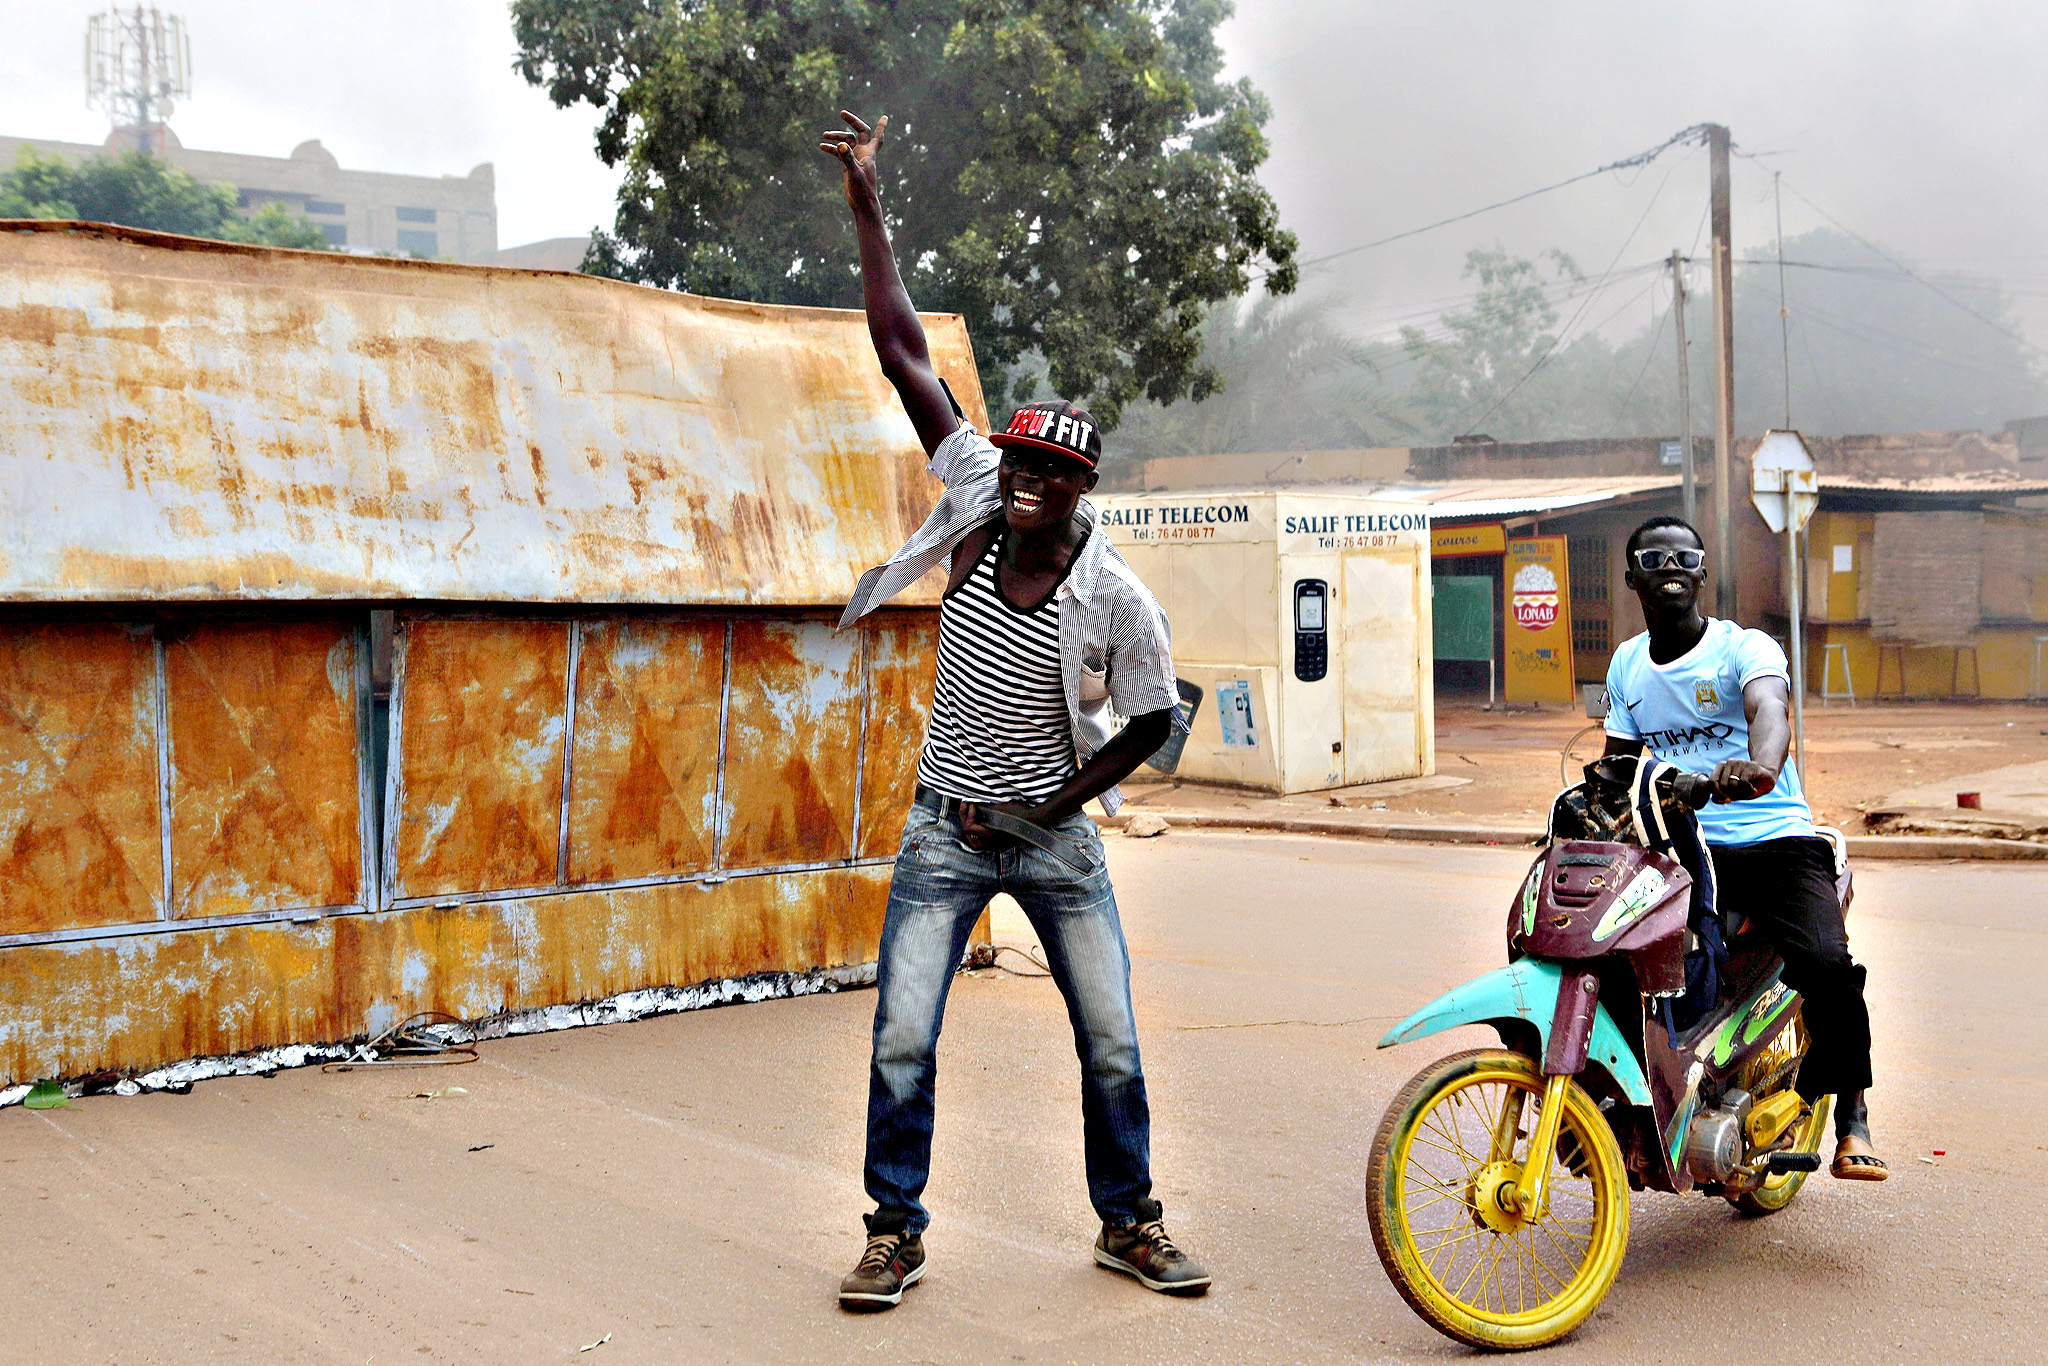 A protester raises his fist in Ouagadougou, Burkina Faso, September 18, 2015. Security forces in the capital of Burkina Faso fired in the air on Friday to disperse demonstrators who burned tyres and blocked neighborhood streets to protest at a military coup this week that derailed a democratic transition. The head of a military junta in Burkina Faso which took power on Thursday has freed interim President Michel Kafando and two of his ministers, state television said on Friday